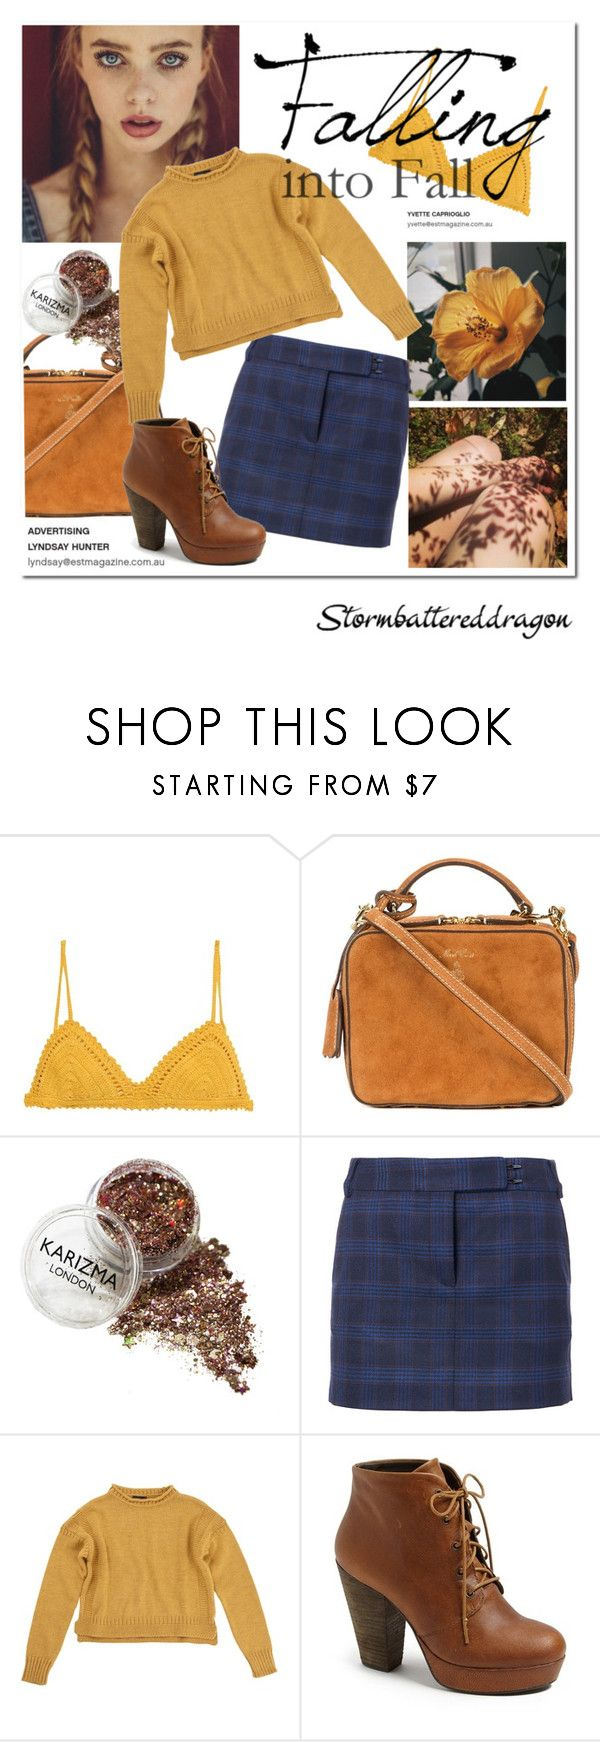 """""""Meet November"""" by stormbattereddragon ❤ liked on Polyvore featuring SHE MADE ME, Mark Cross, TIBI, Topshop and Steve Madden"""